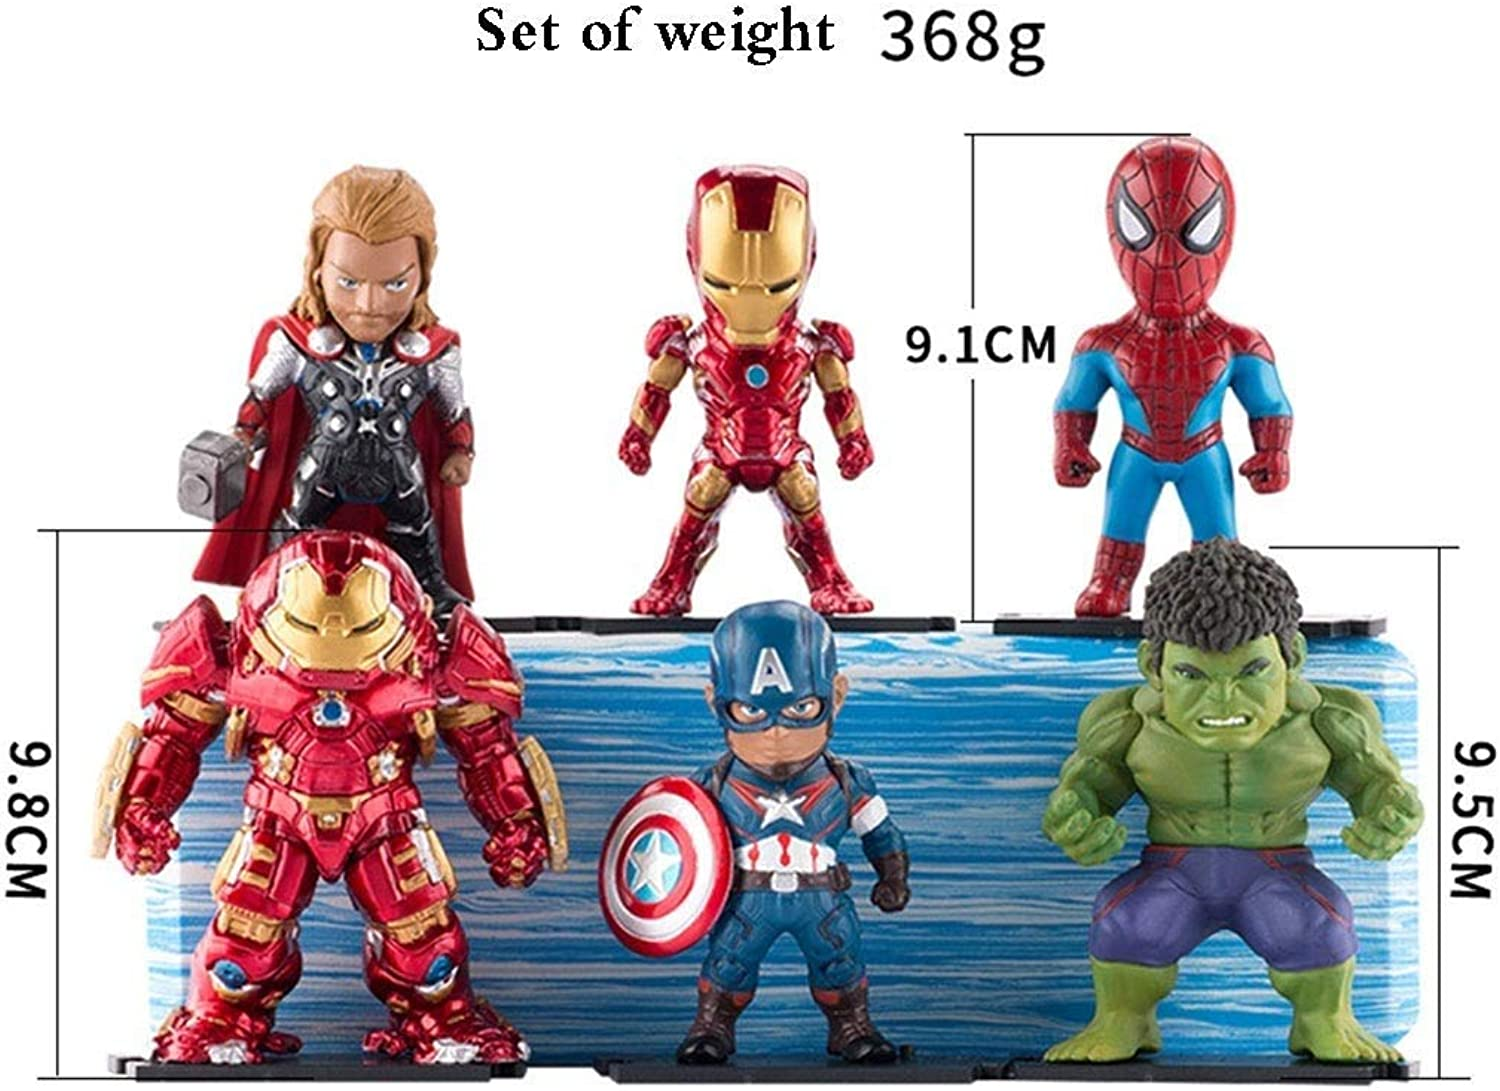 JTWMY Q version of the Avengers model toy spider anime handmade car accessories